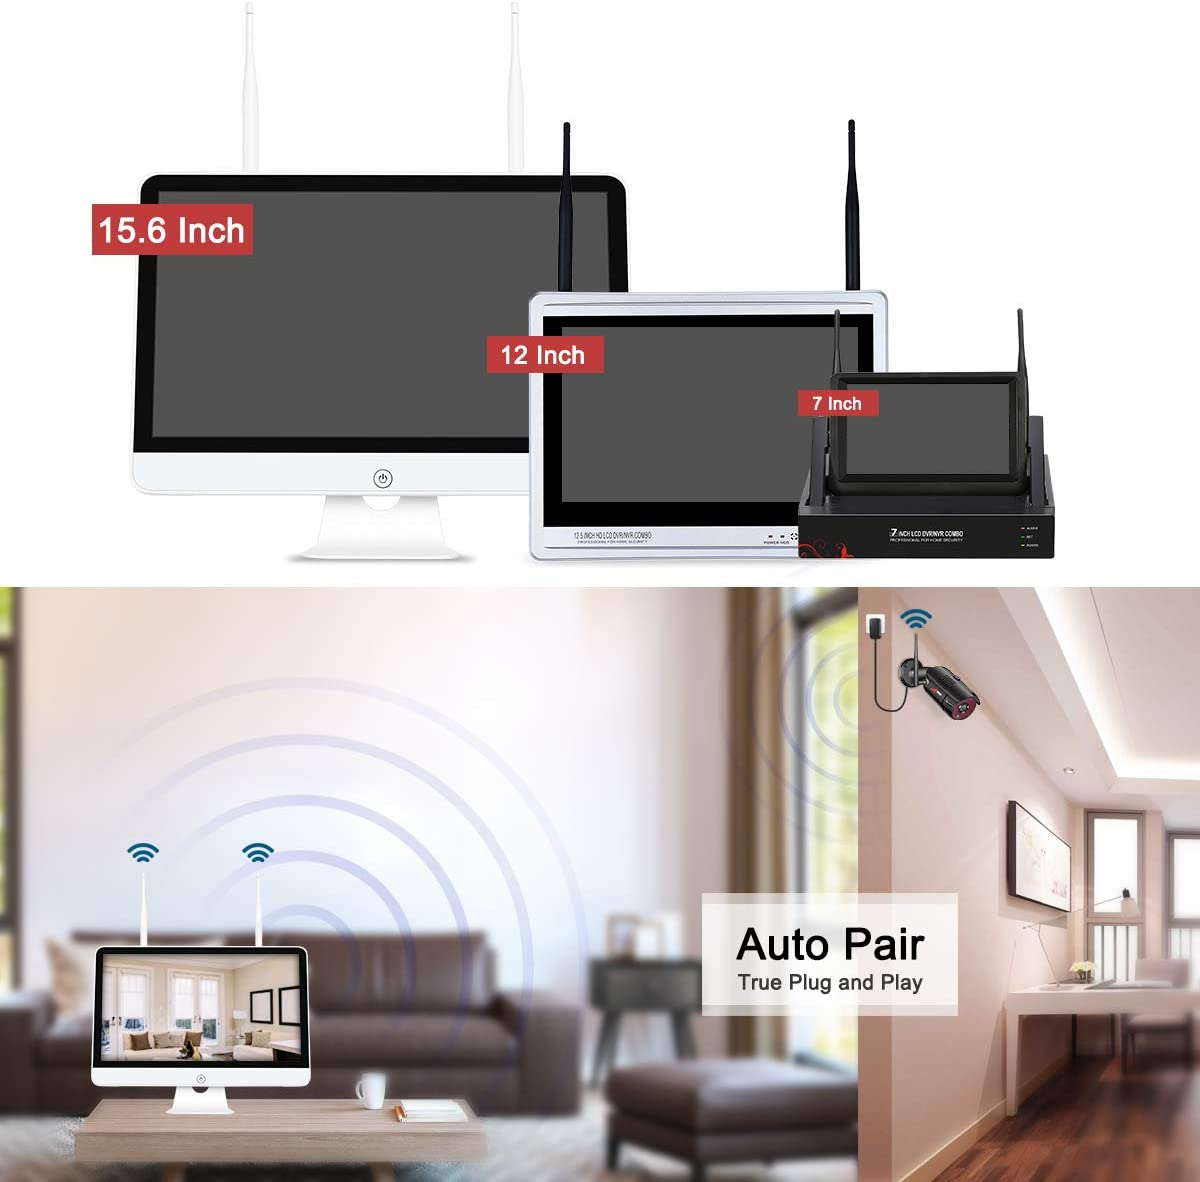 All-in-One Wireless Security Camera System with 15.6 Inch Monitor, 4 Channel 1080P Waterproof Indoor Outdoor Wireless Surveillance IP Camera, ANRAN Remote Home Monitoring System 1TB HDD, Plug Play